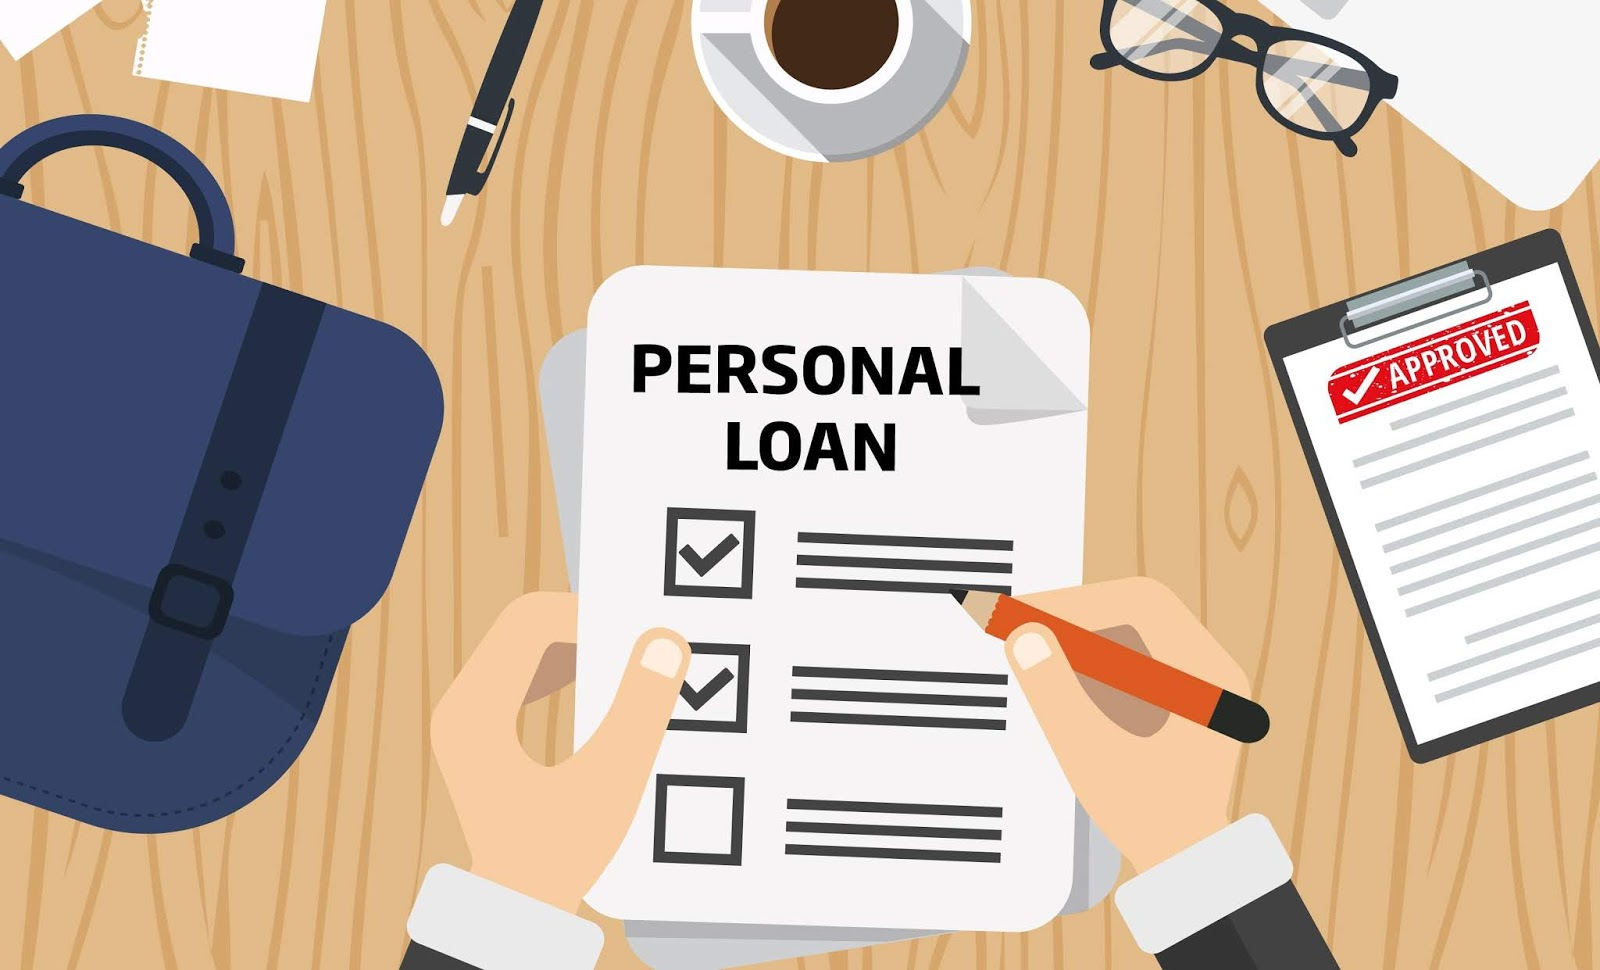 loan personal loans micro nigeria finance cash business credit lending quick need process disbursal lenders quickbooks apply apps eligibility card